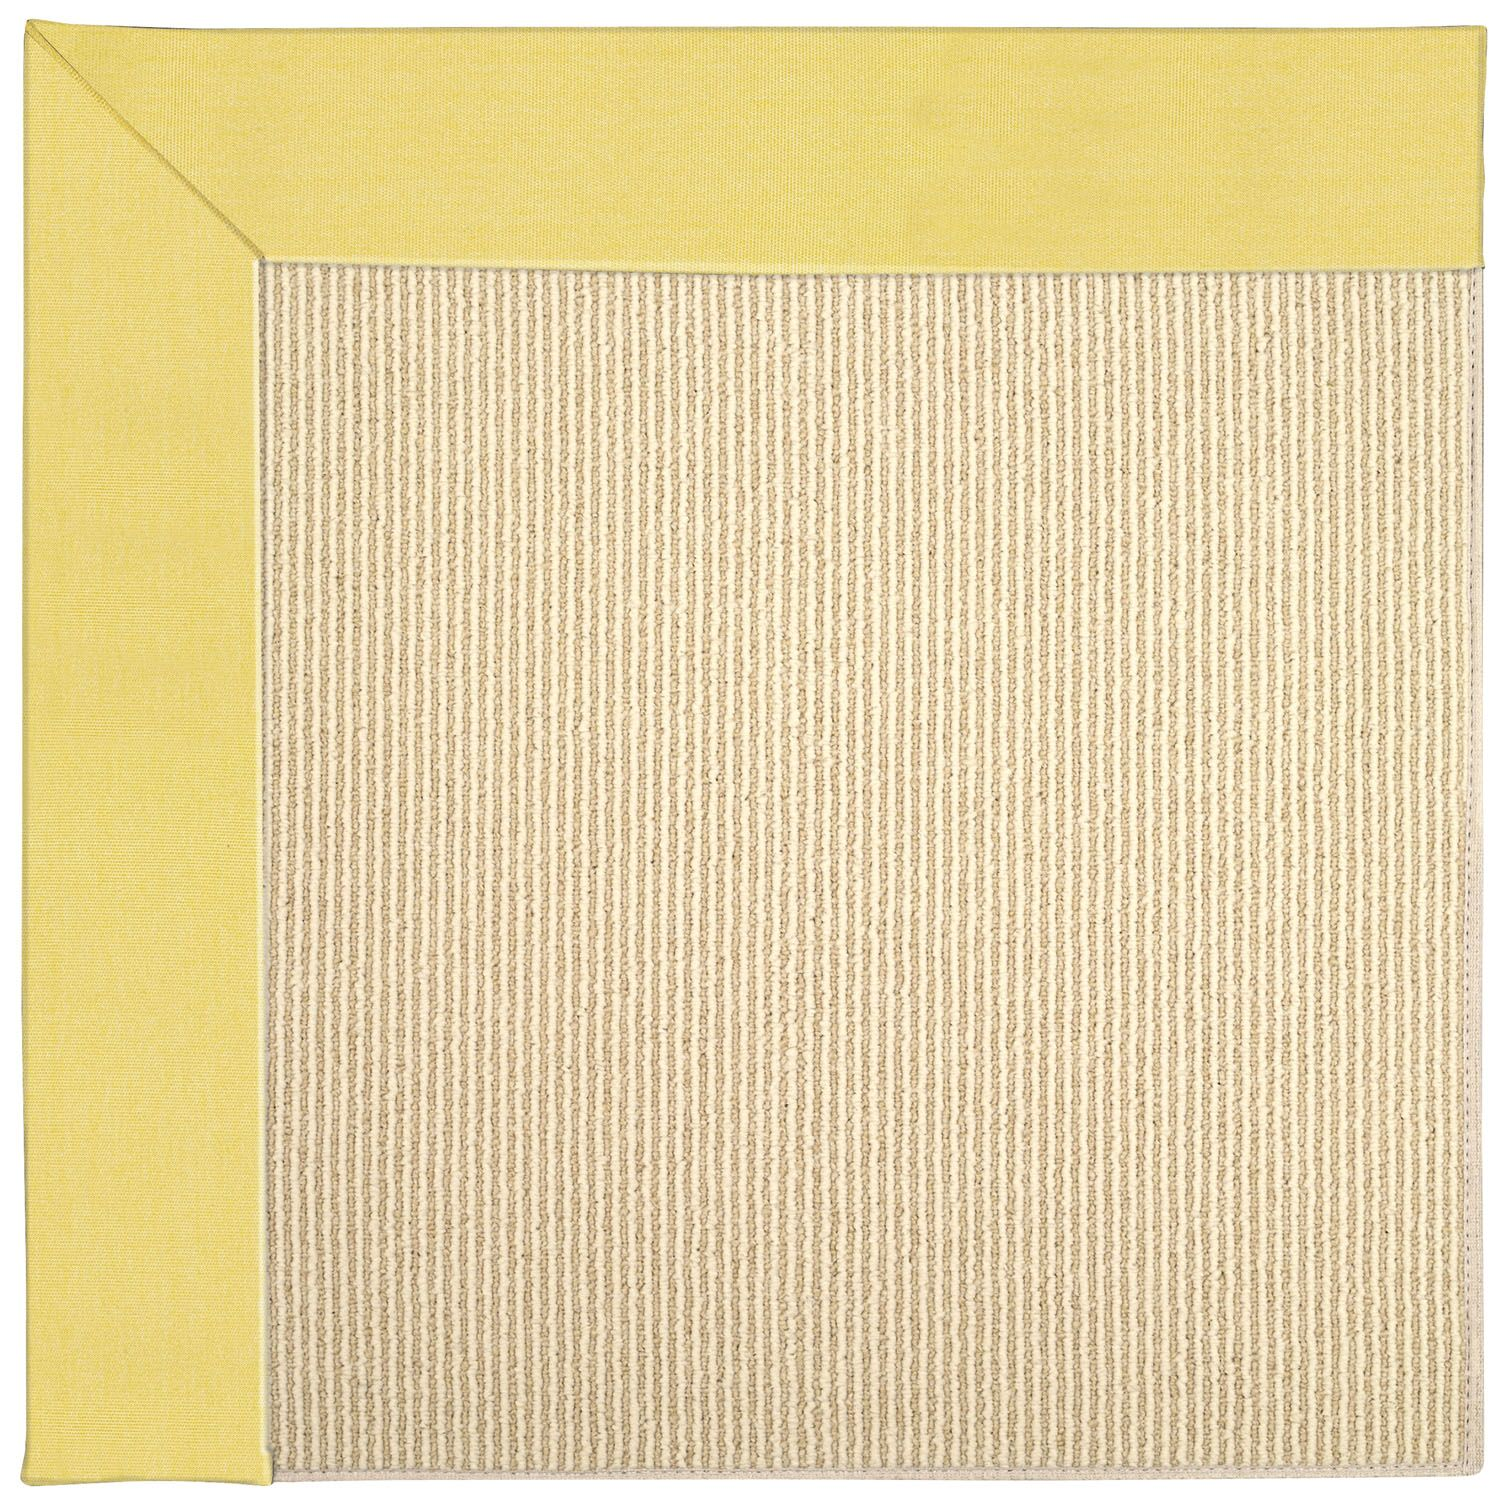 Lisle Machine Tufted Yellow/Beige Indoor/Outdoor Area Rug Rug Size: Rectangle 4' x 6'